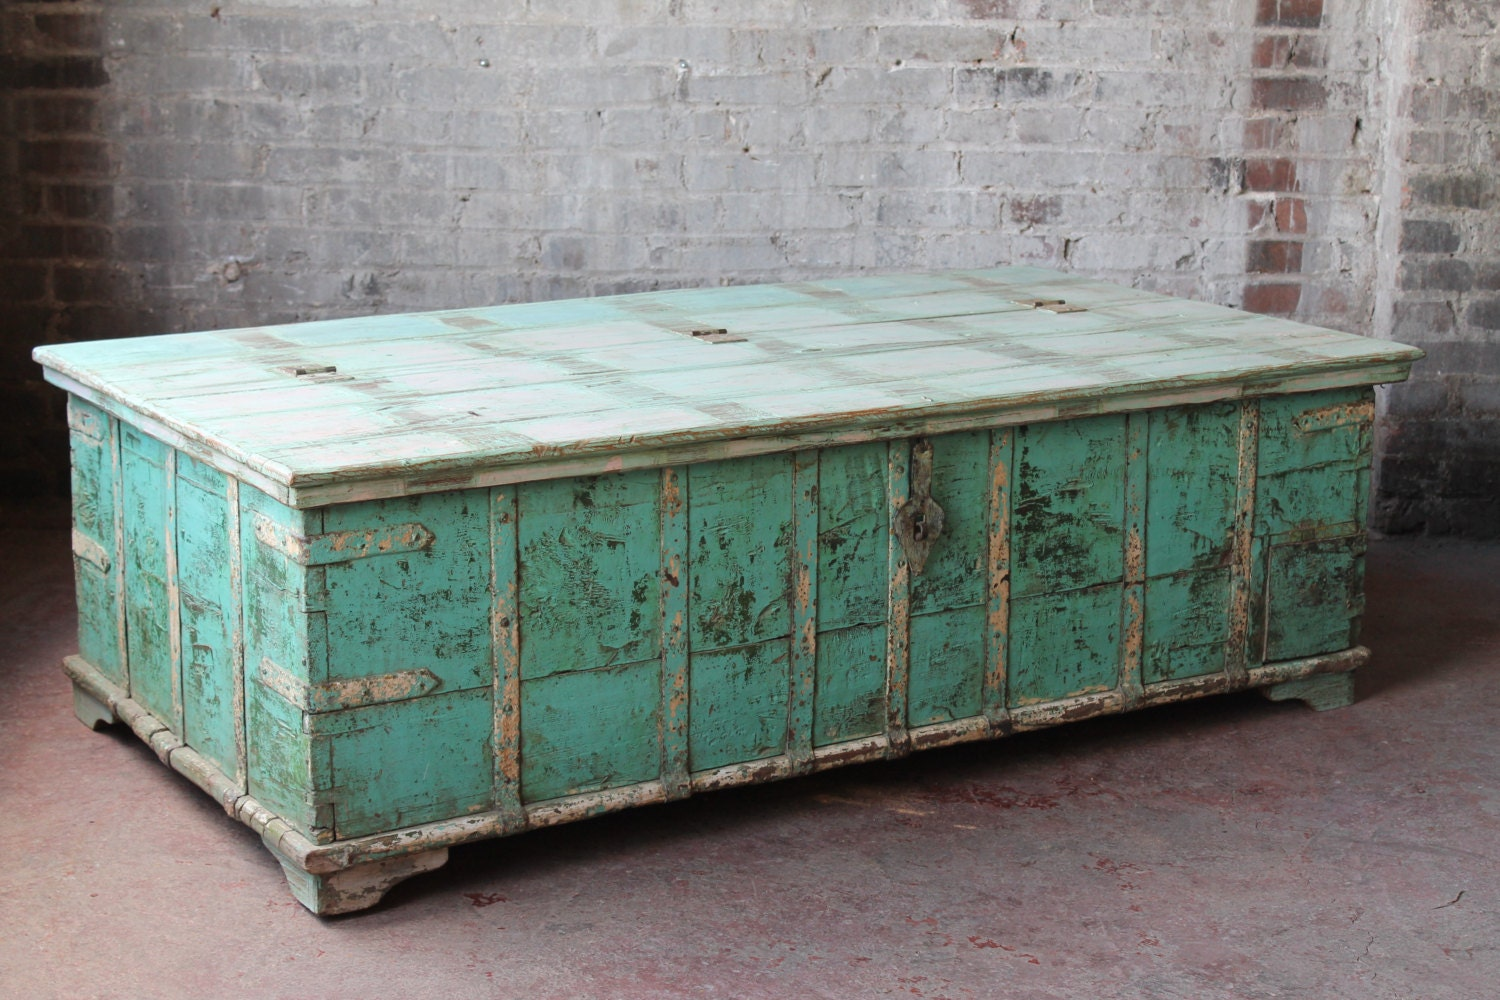 Reclaimed salvaged coffee table antique indian pitara trunk Indian trunk coffee table